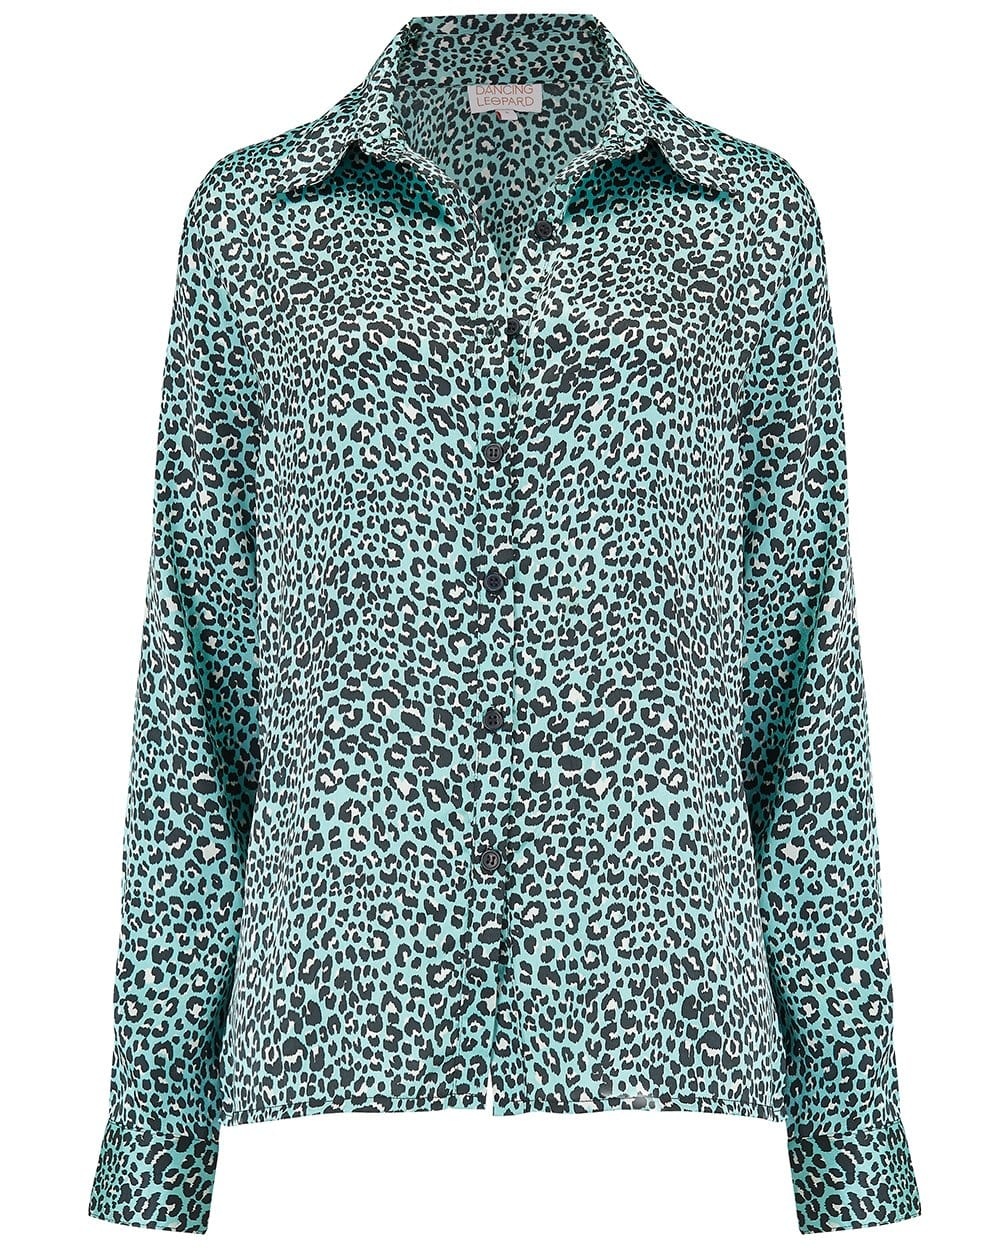 Front view of Dancing Leopard Nevada Shirt in Mint Ditzy Leopard Print on white background